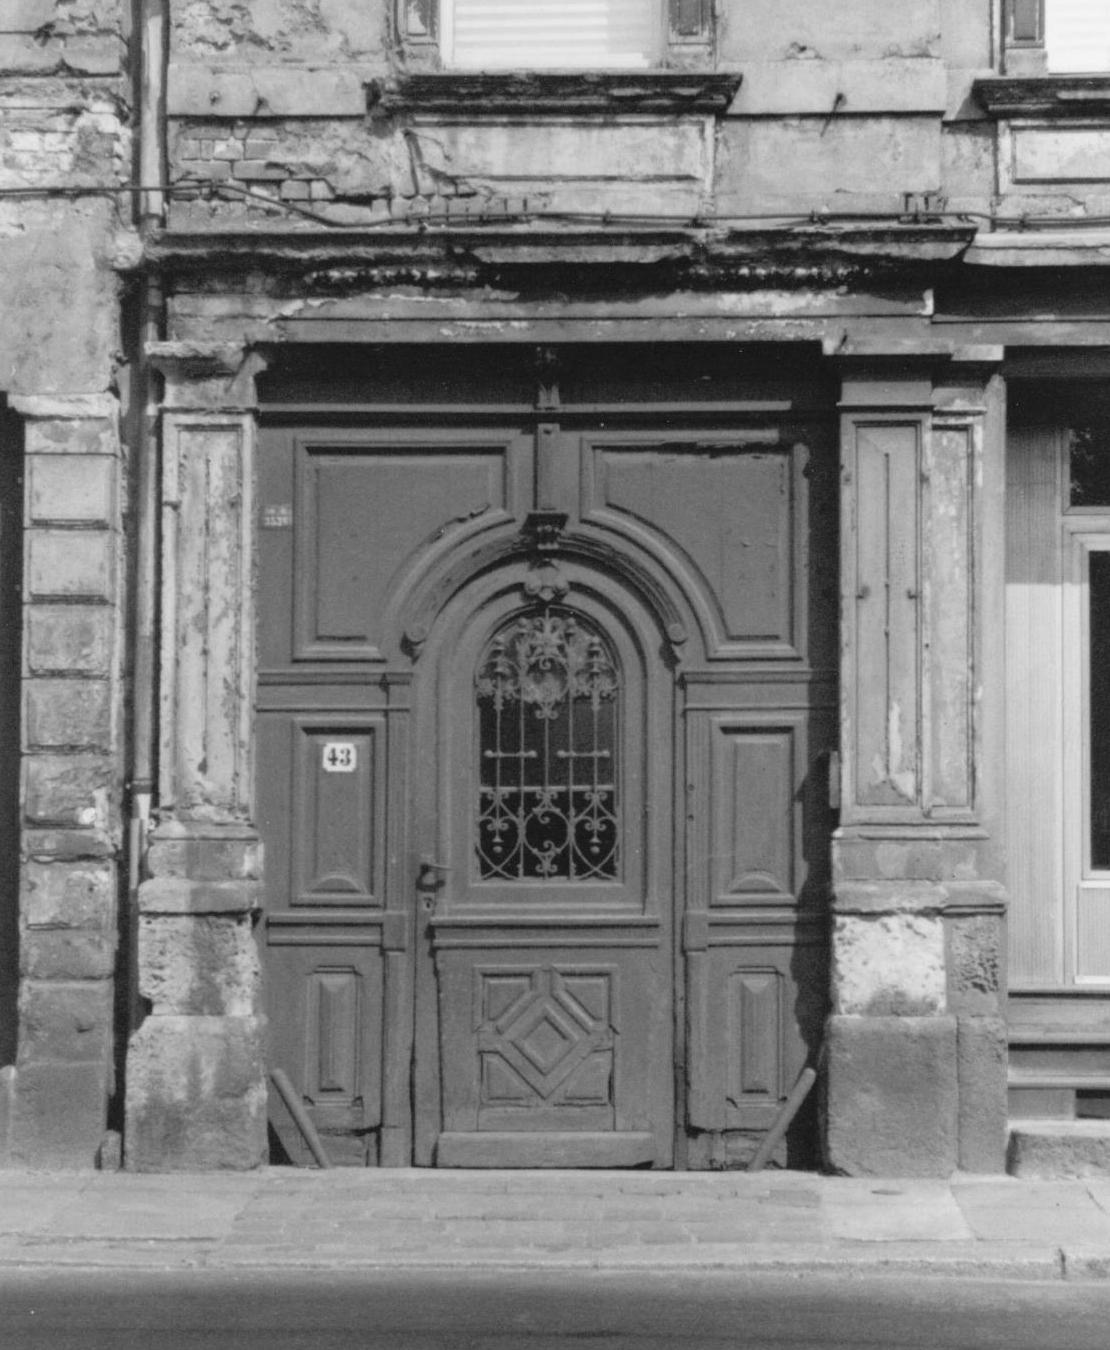 Doorway on Shakespearestrasse